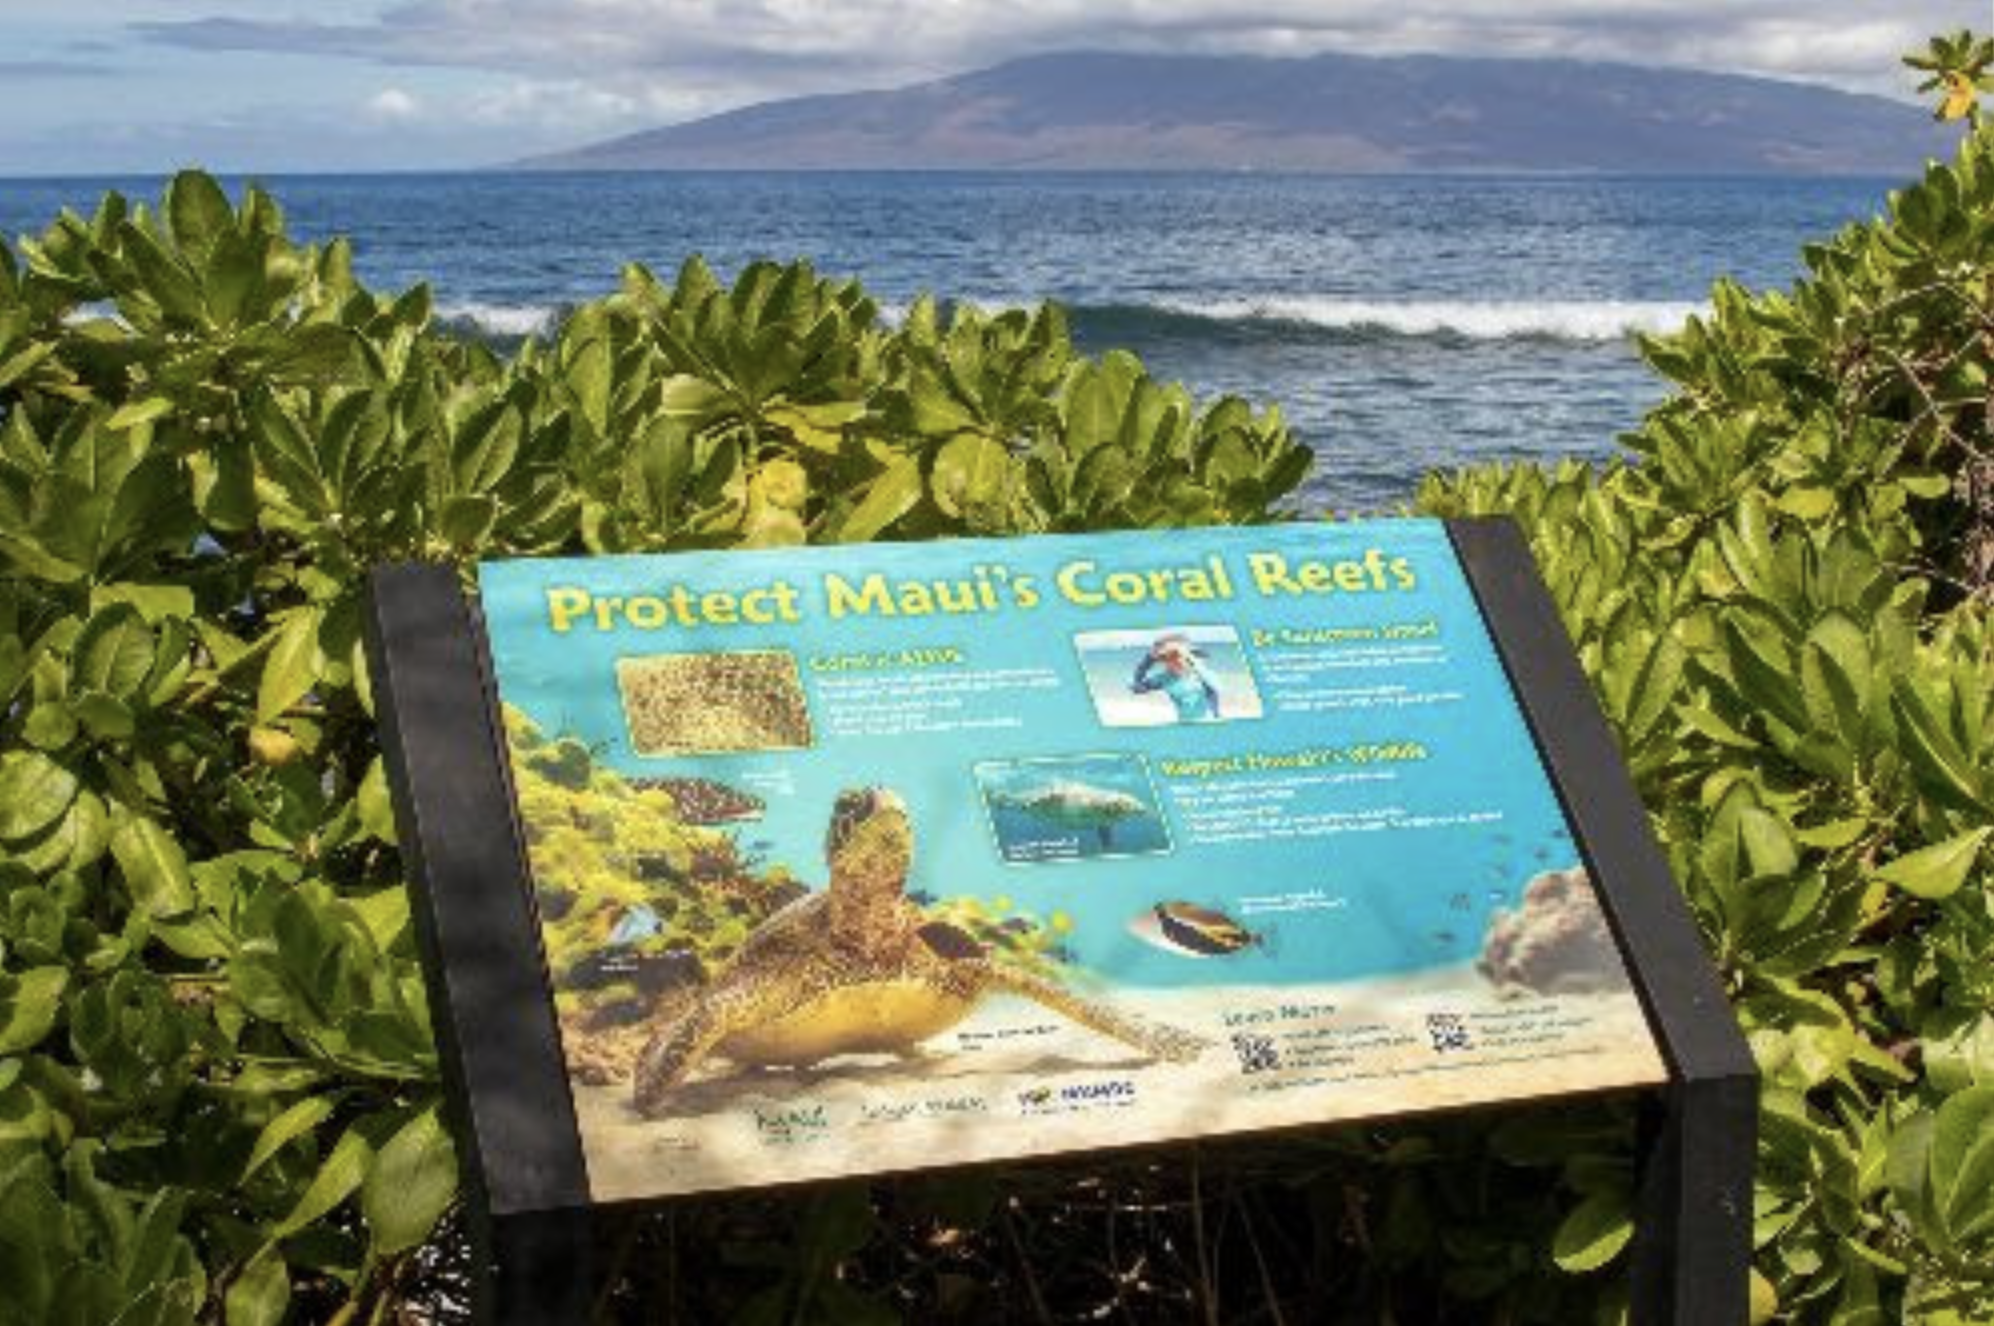 New Coral Reef Information Signs Installed at 39 Maui Beaches